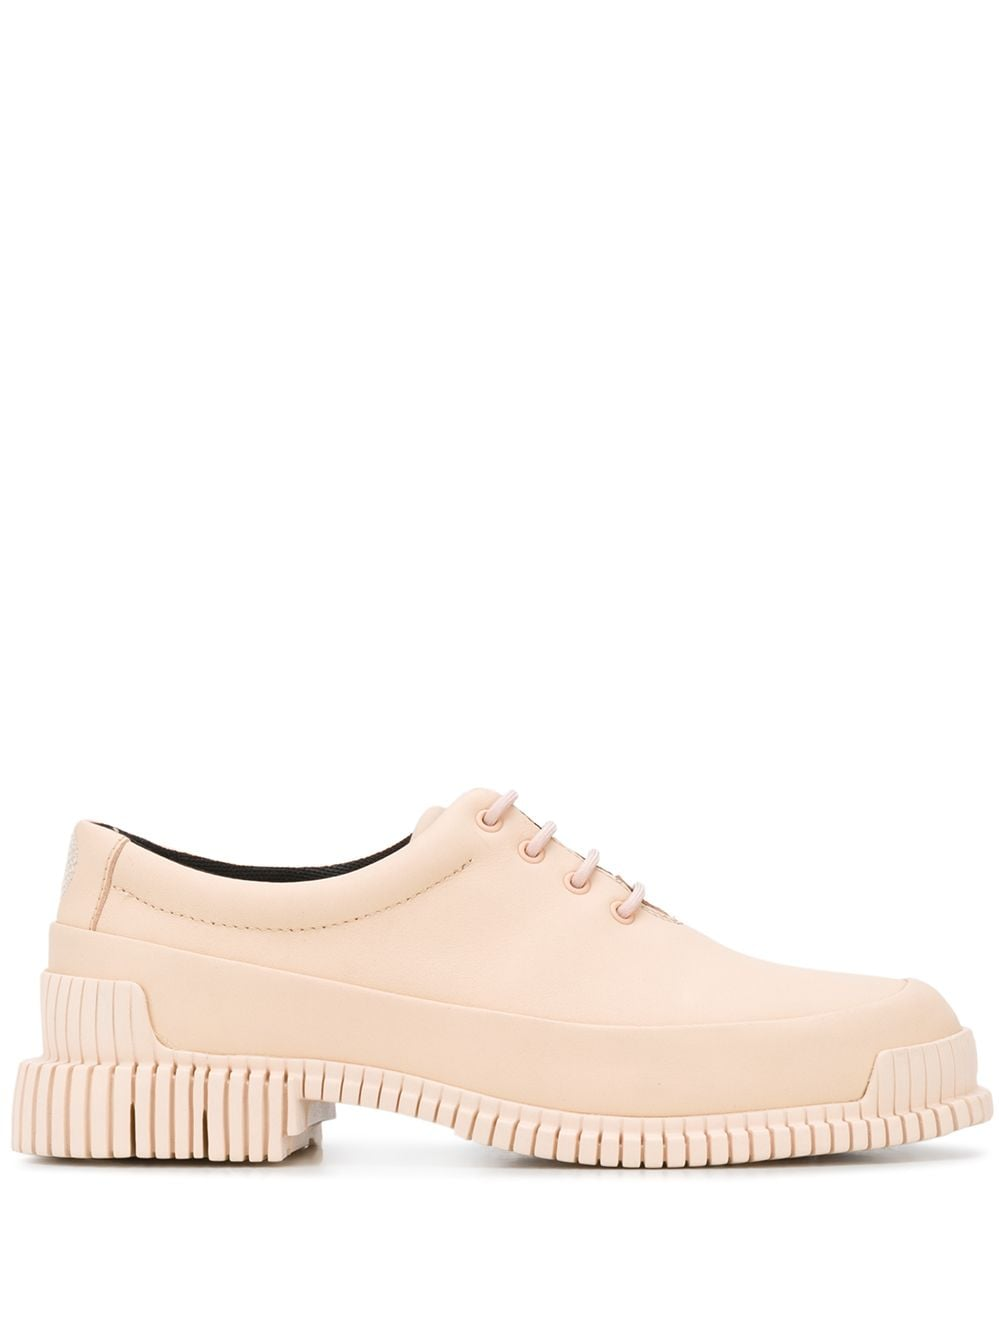 Camper Pix lace-up shoes - Neutrals von Camper